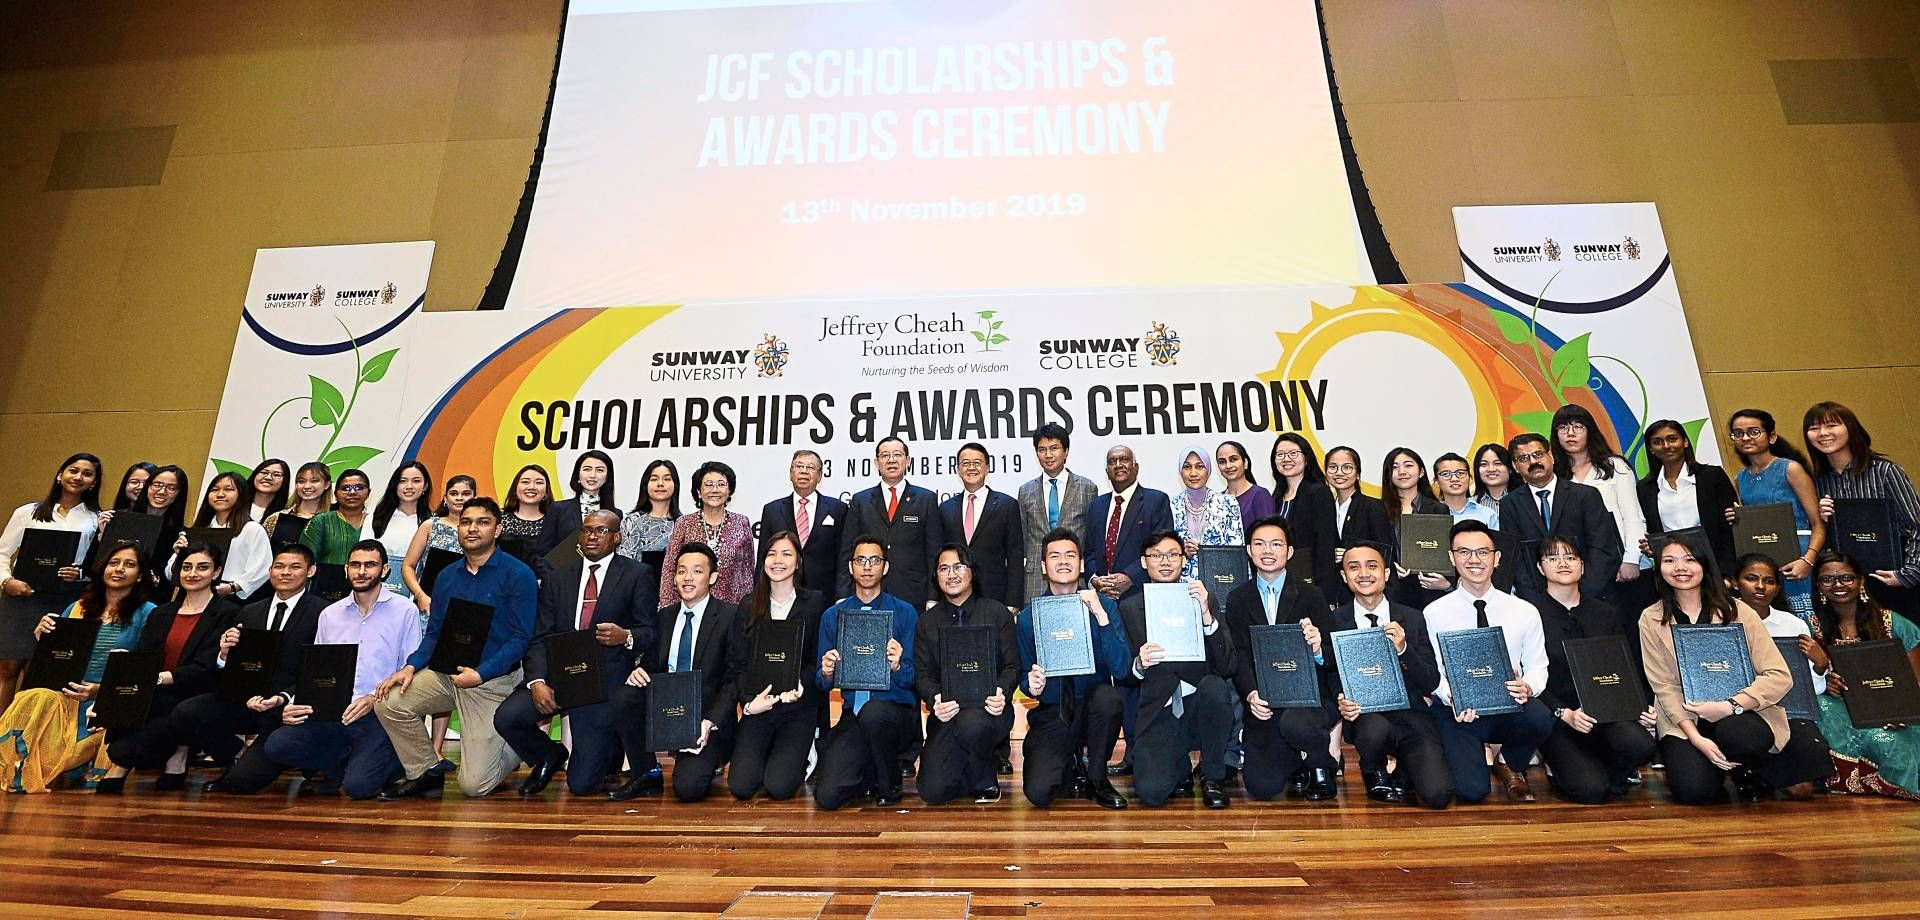 Big smiles: Lim and Cheah posing together with recipients of the Jeffrey Cheah Foundation during the awards ceremony at Sunway's Subang Jaya campus.